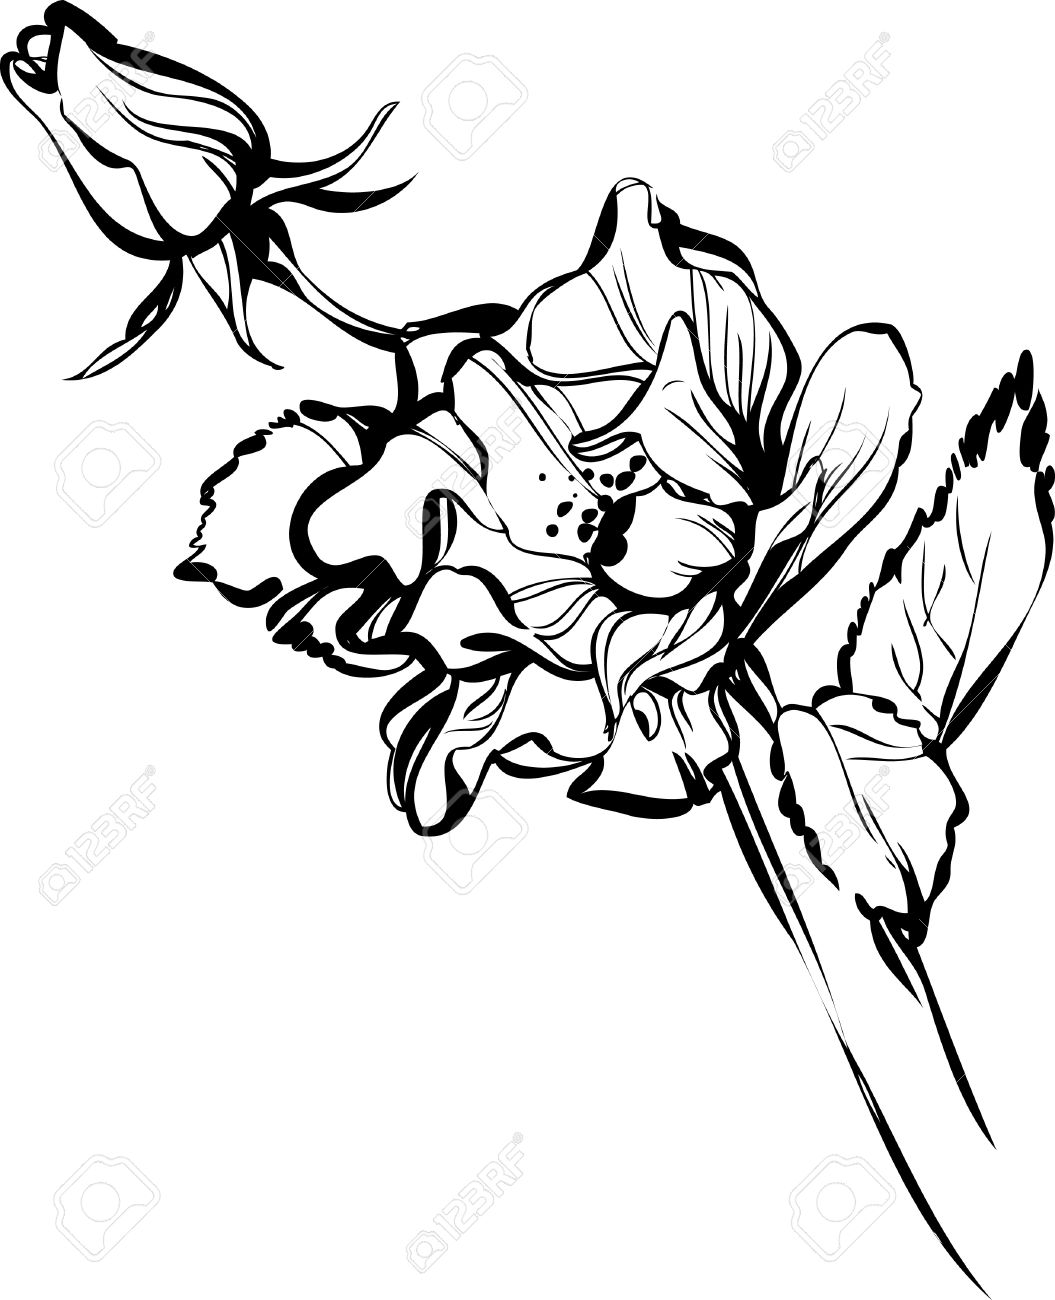 Black and white drawing of a flower bud of a beautiful royalty free black and white drawing of a flower bud of a beautiful stock vector 10224952 mightylinksfo Gallery